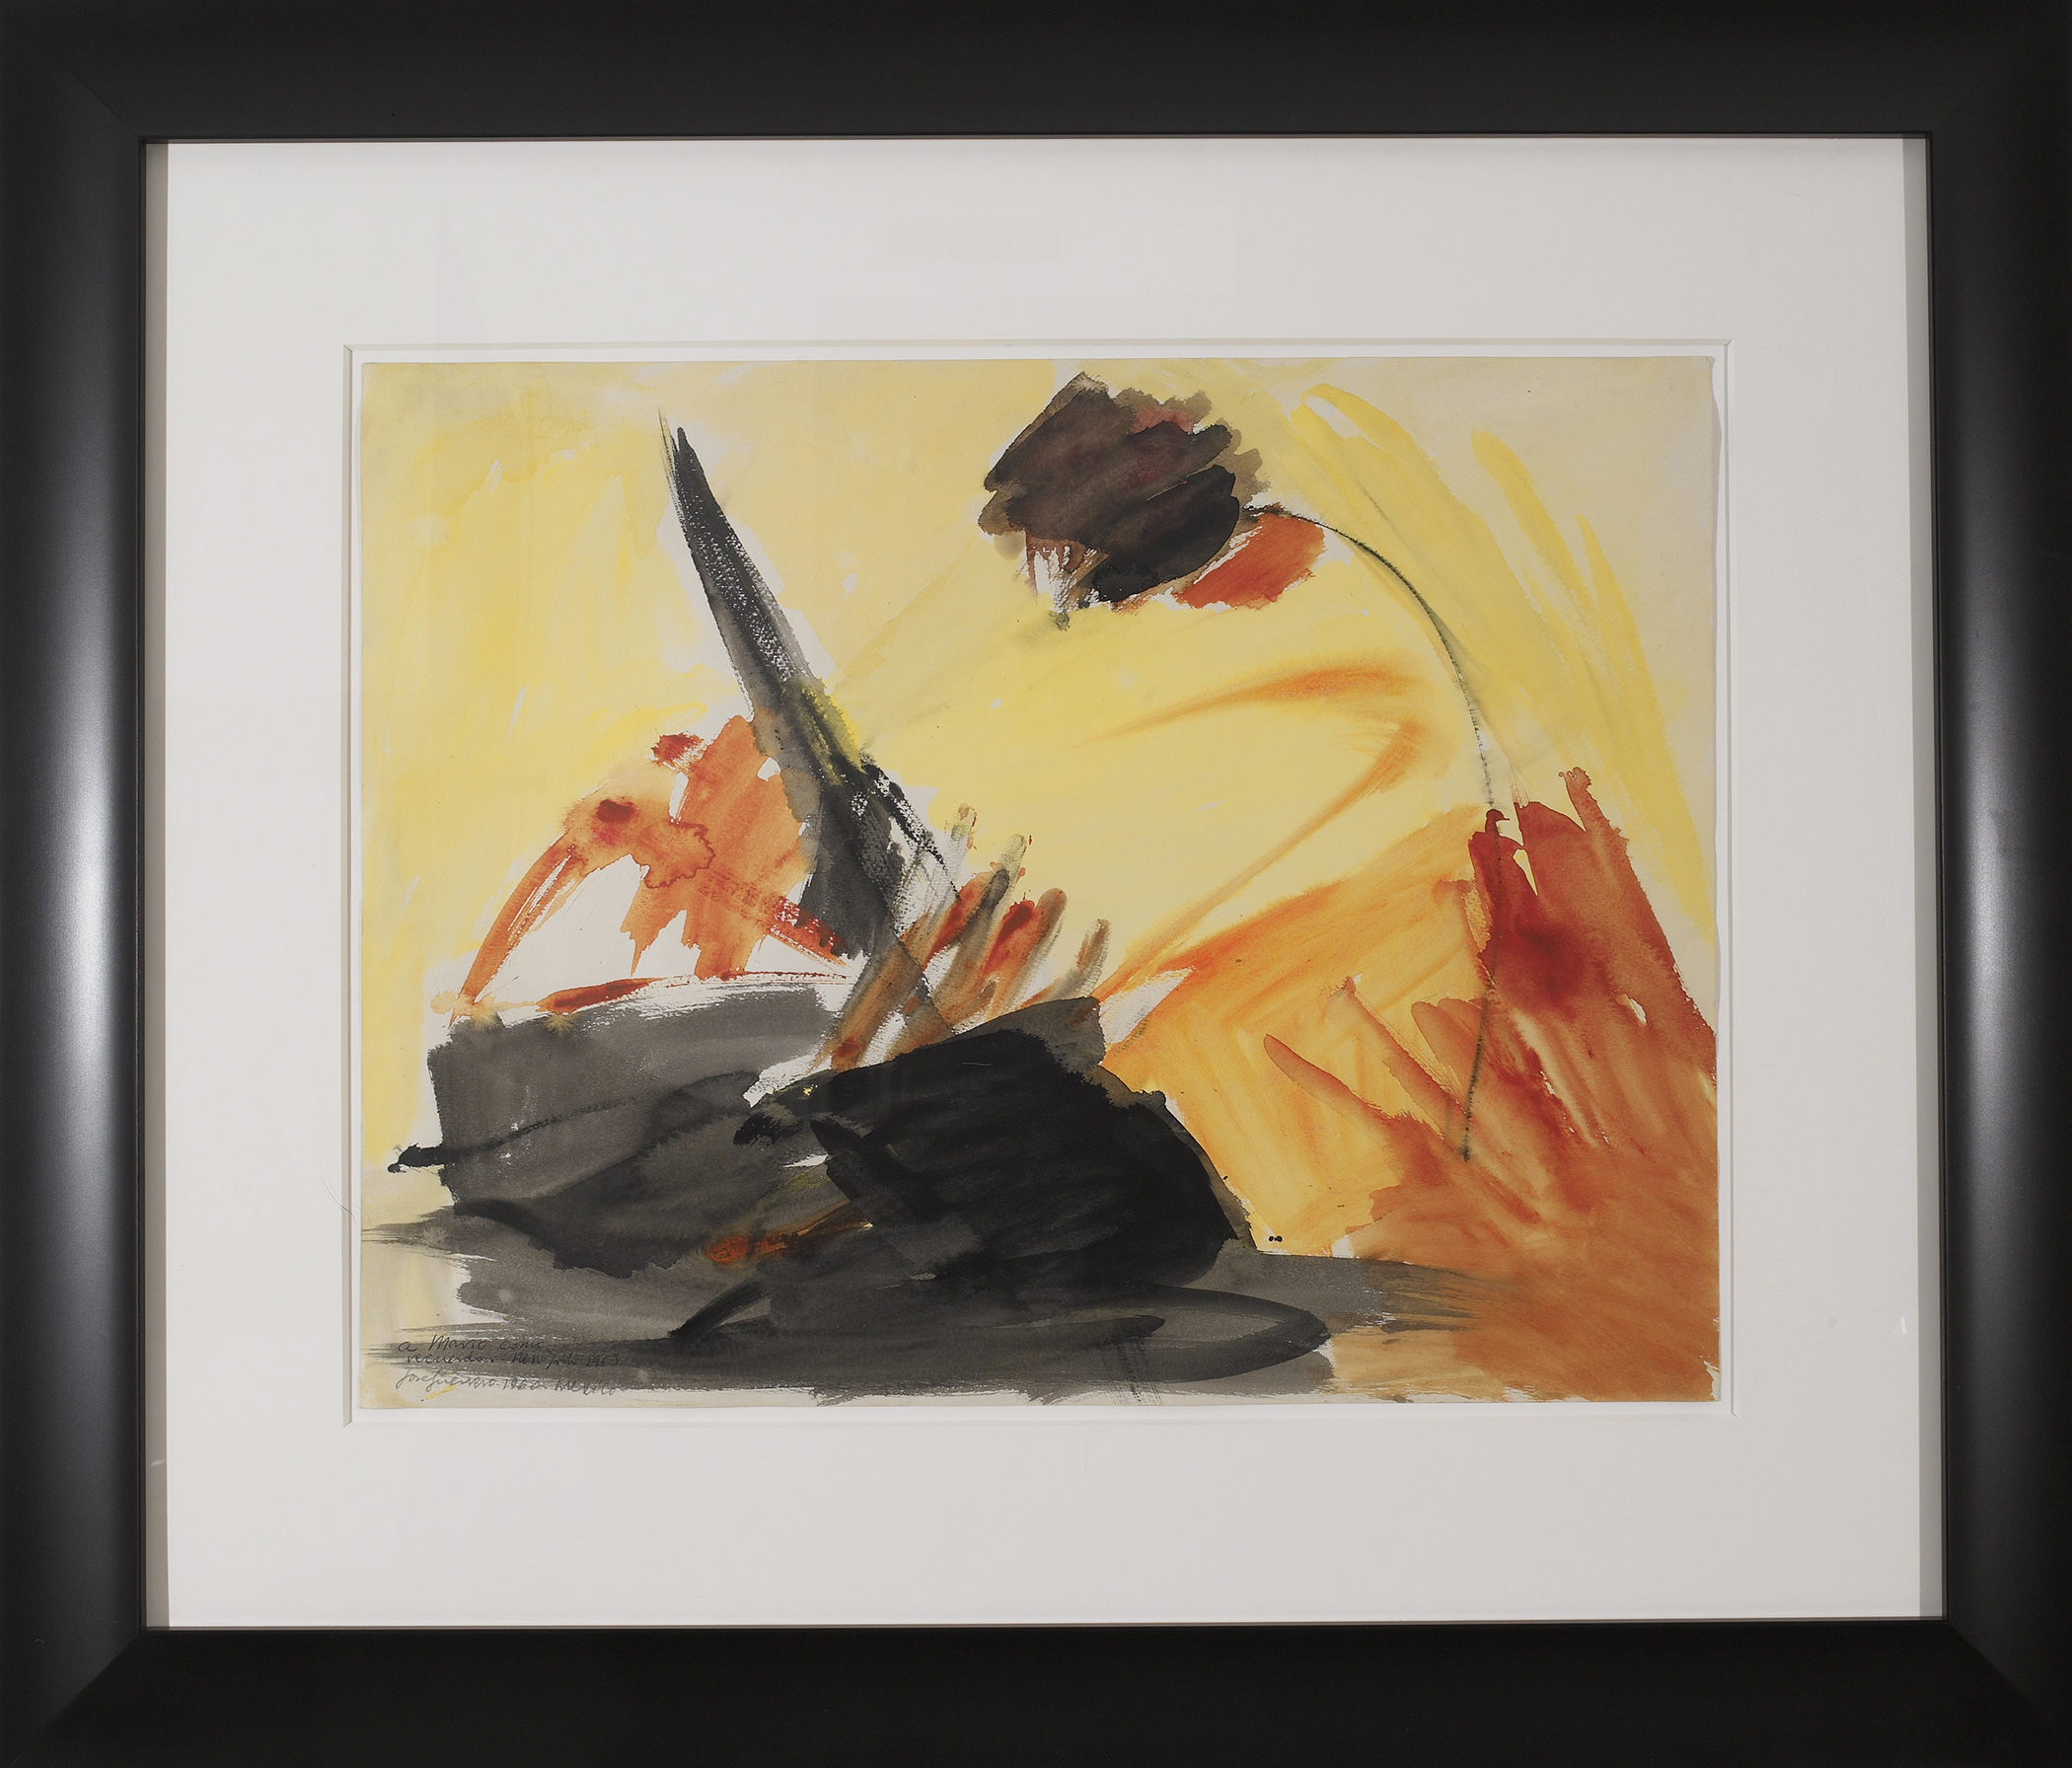 SOLD  Untitled, 1960  , ink and watercolor on paper, 19 3/4 x 25 1/2 inches